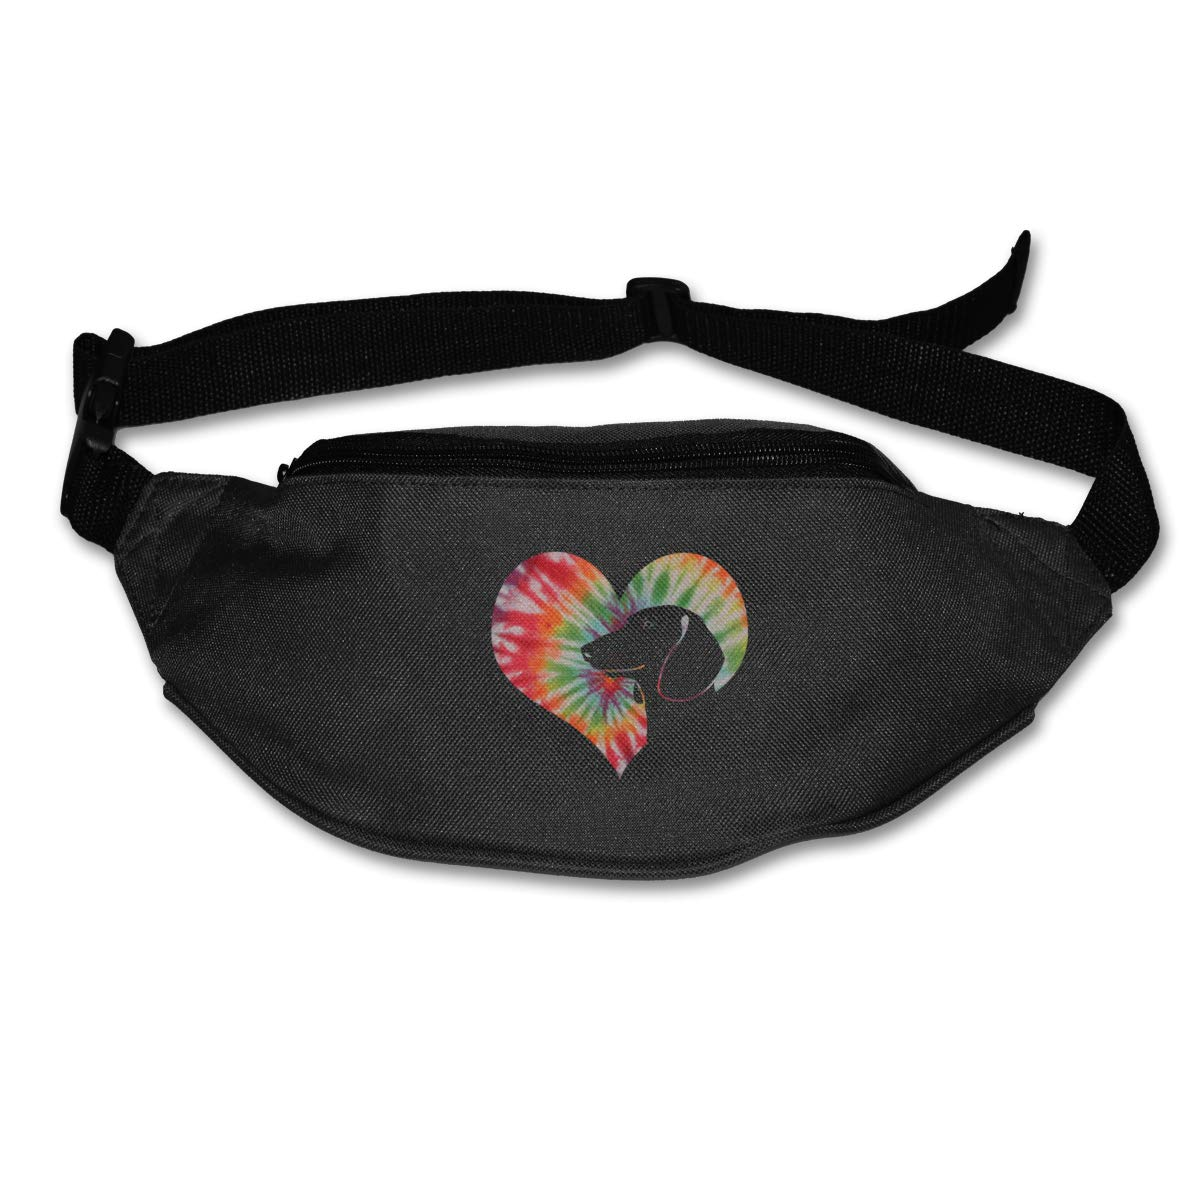 Tie Dye Dachshund Sport Waist Packs Fanny Pack Adjustable For Run